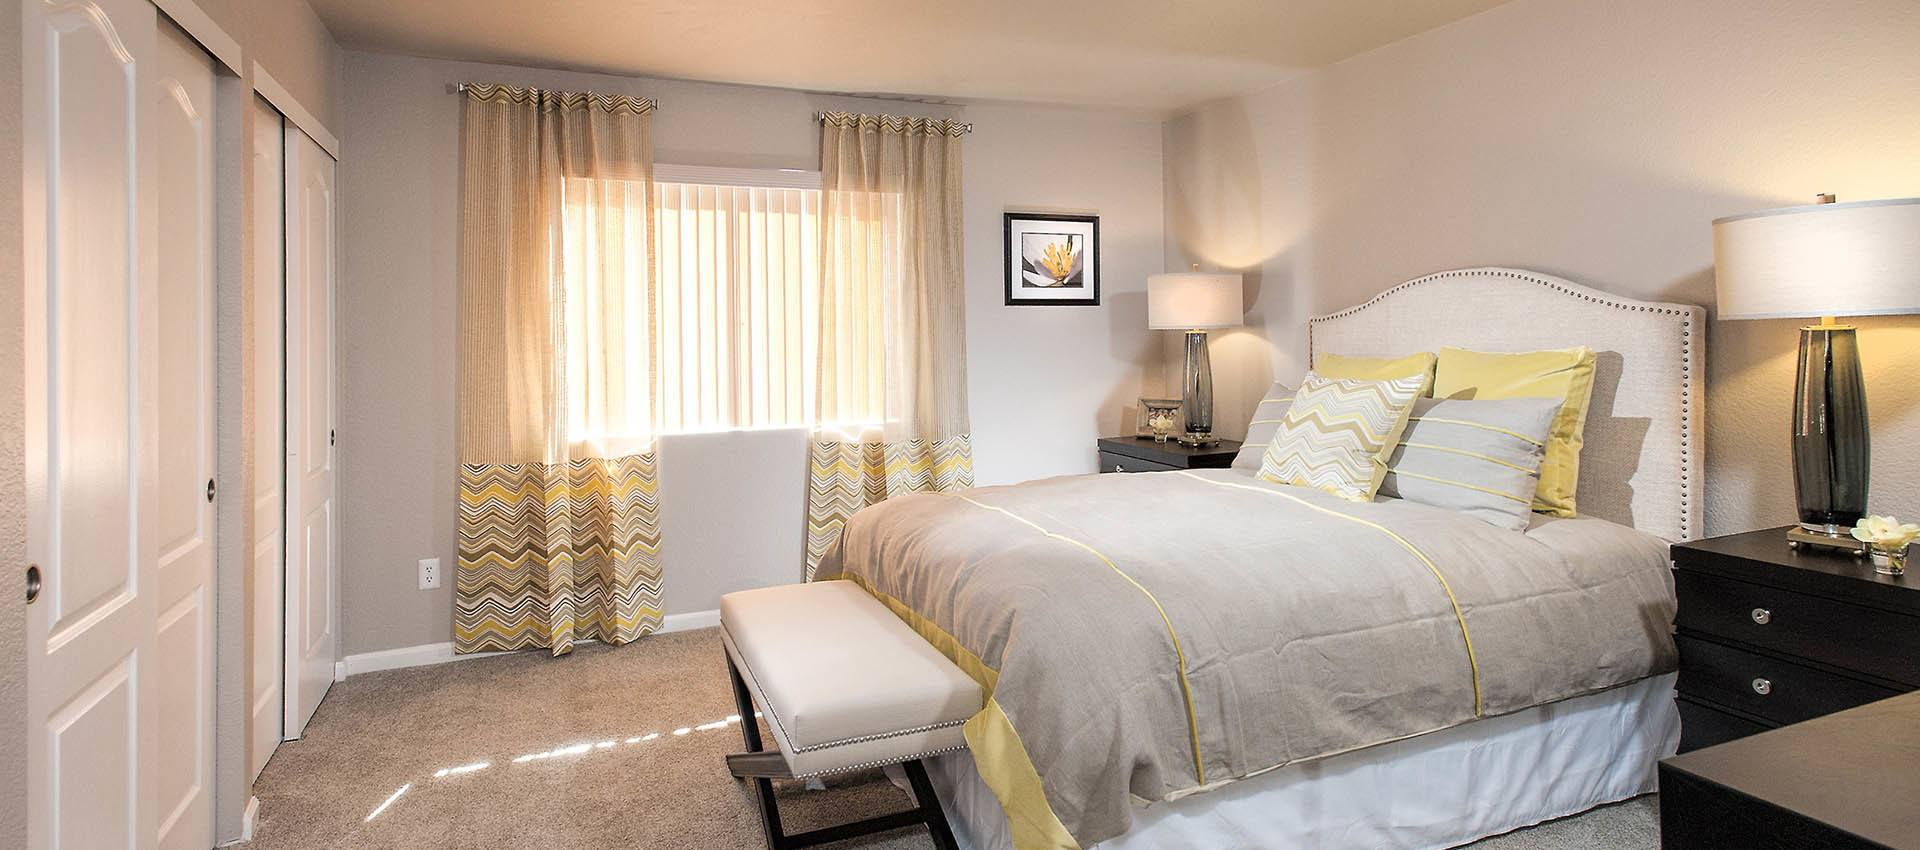 Spacious Master Bedroom at Deer Valley Apartment Homes in Roseville, California